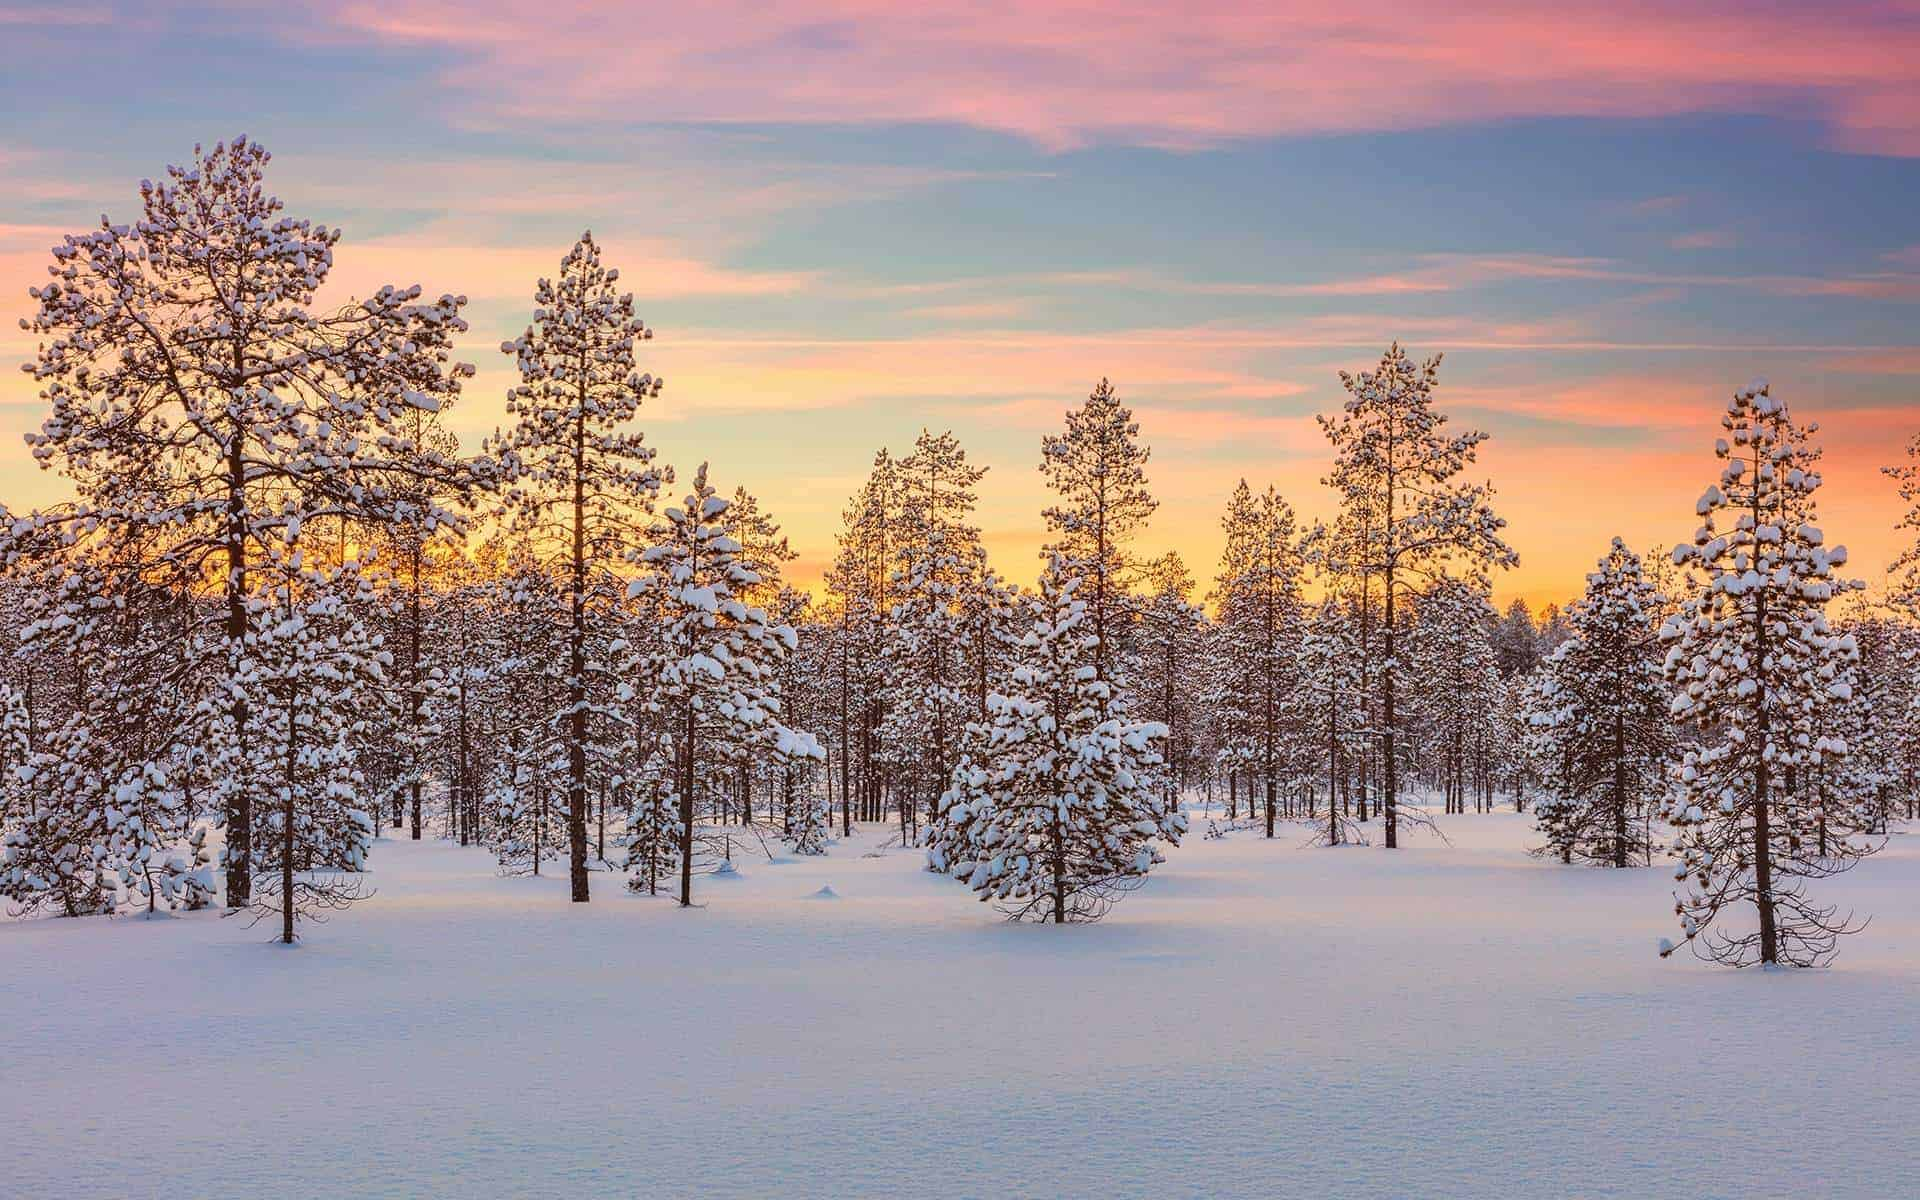 Photo of Finland during winter used as a banner background for Pretty Wild World. Photo was bought from Shutterstock.